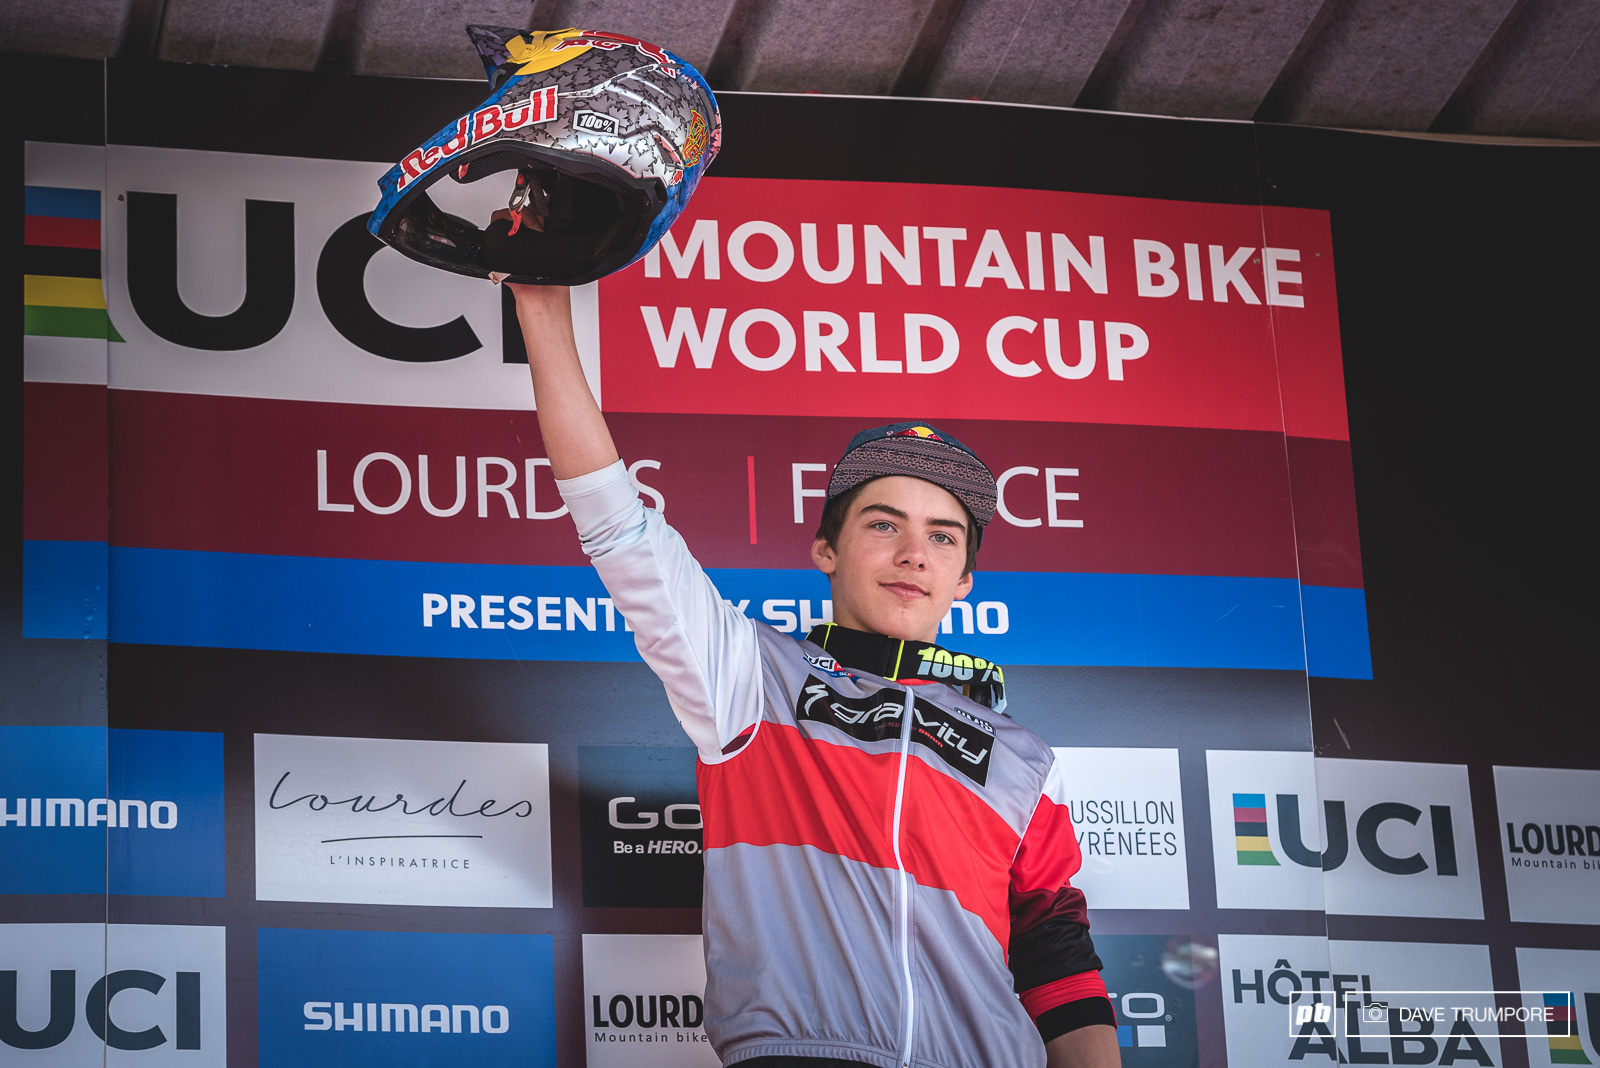 And that s how you make an entrance to the Word Cup stage. Congrats Finn Iles we have a feeling we will be shooting a lot of photos like this over the next few years.